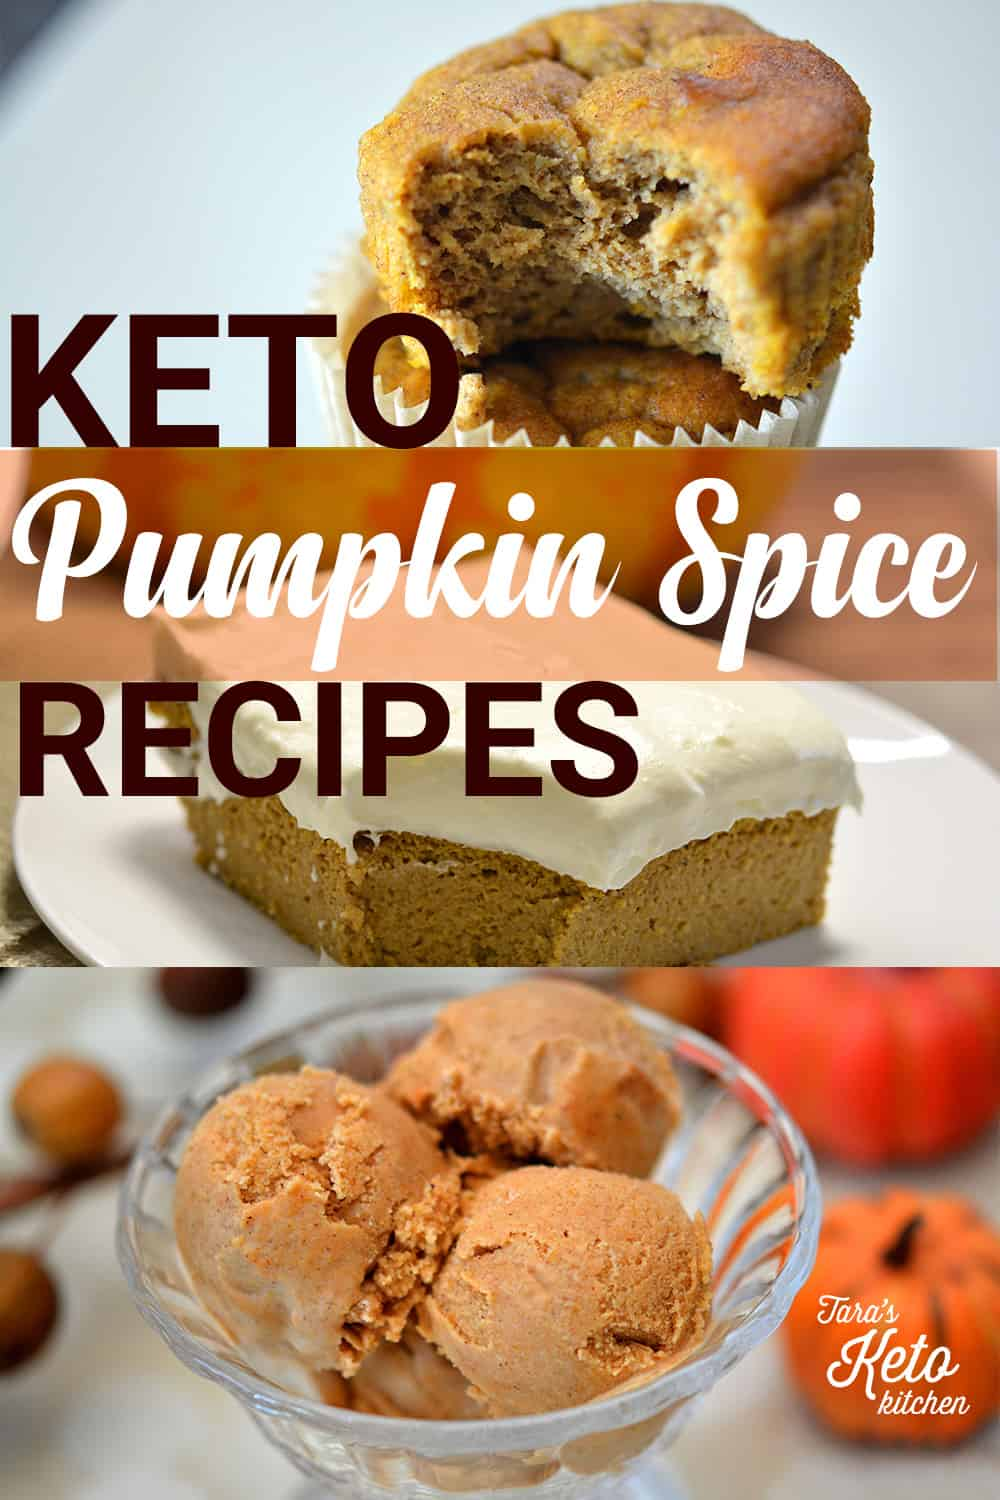 keto pumpkin spice recipes for pinterest image showing muffins, bars and ice cream